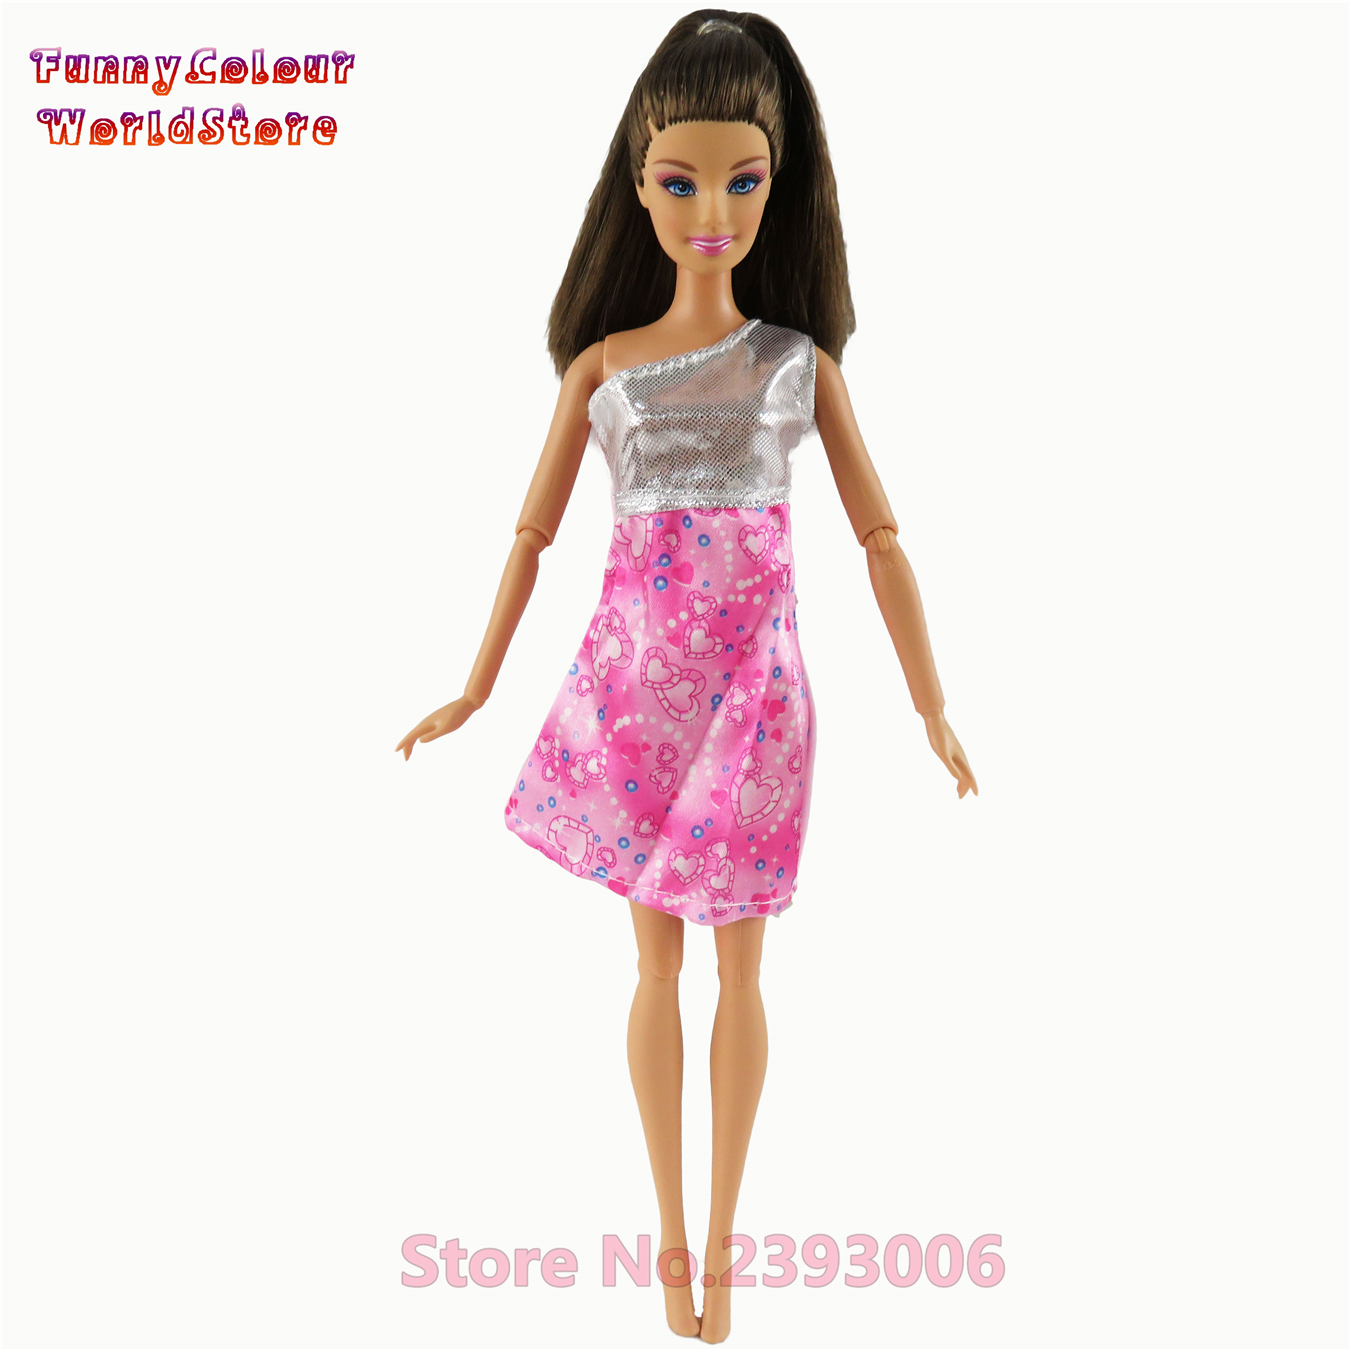 1 Pcs Trend Brief Costume Stunning Handmade Social gathering Outfit Barbie Doll Garments For Barbie Dolls Costume Woman's Reward For Children #013A